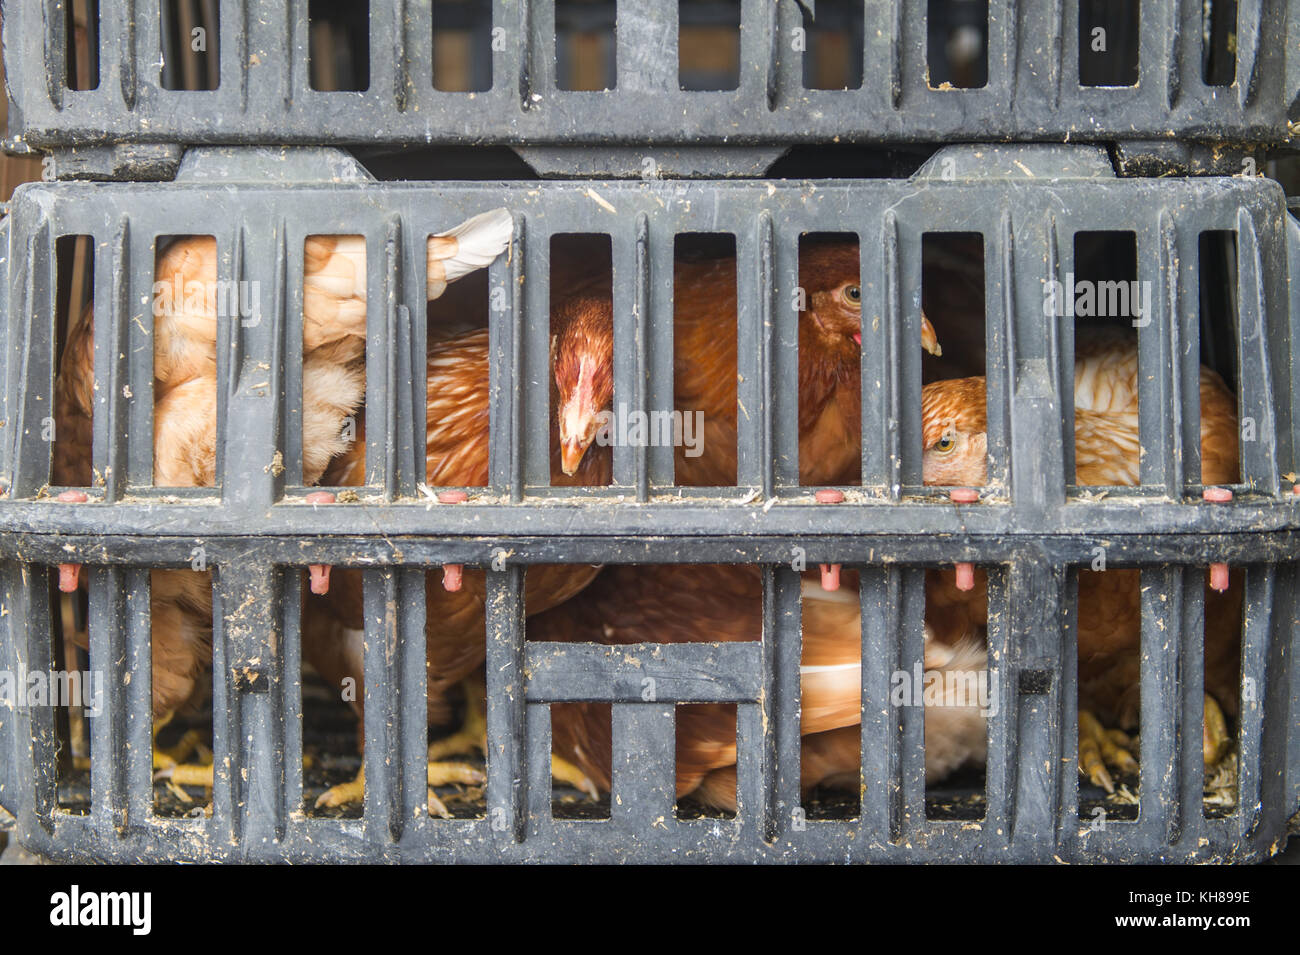 Hens in a grey crate ready for sale at Skibbereen Farmers Market, Skibbereen, County Cork, Ireland. - Stock Image